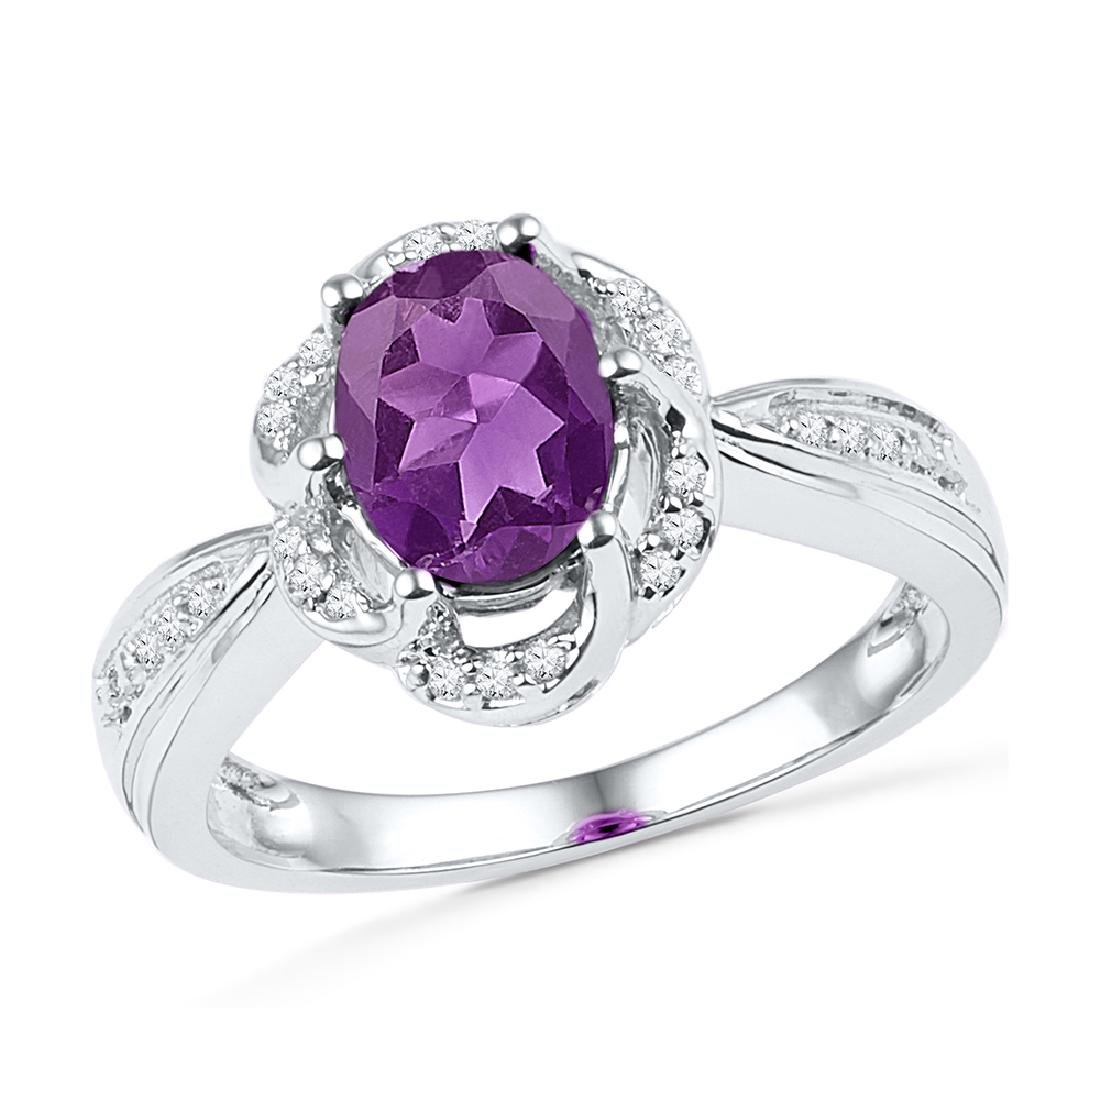 1.73 CTW Oval Lab-Created Amethyst Solitaire Ring 10K